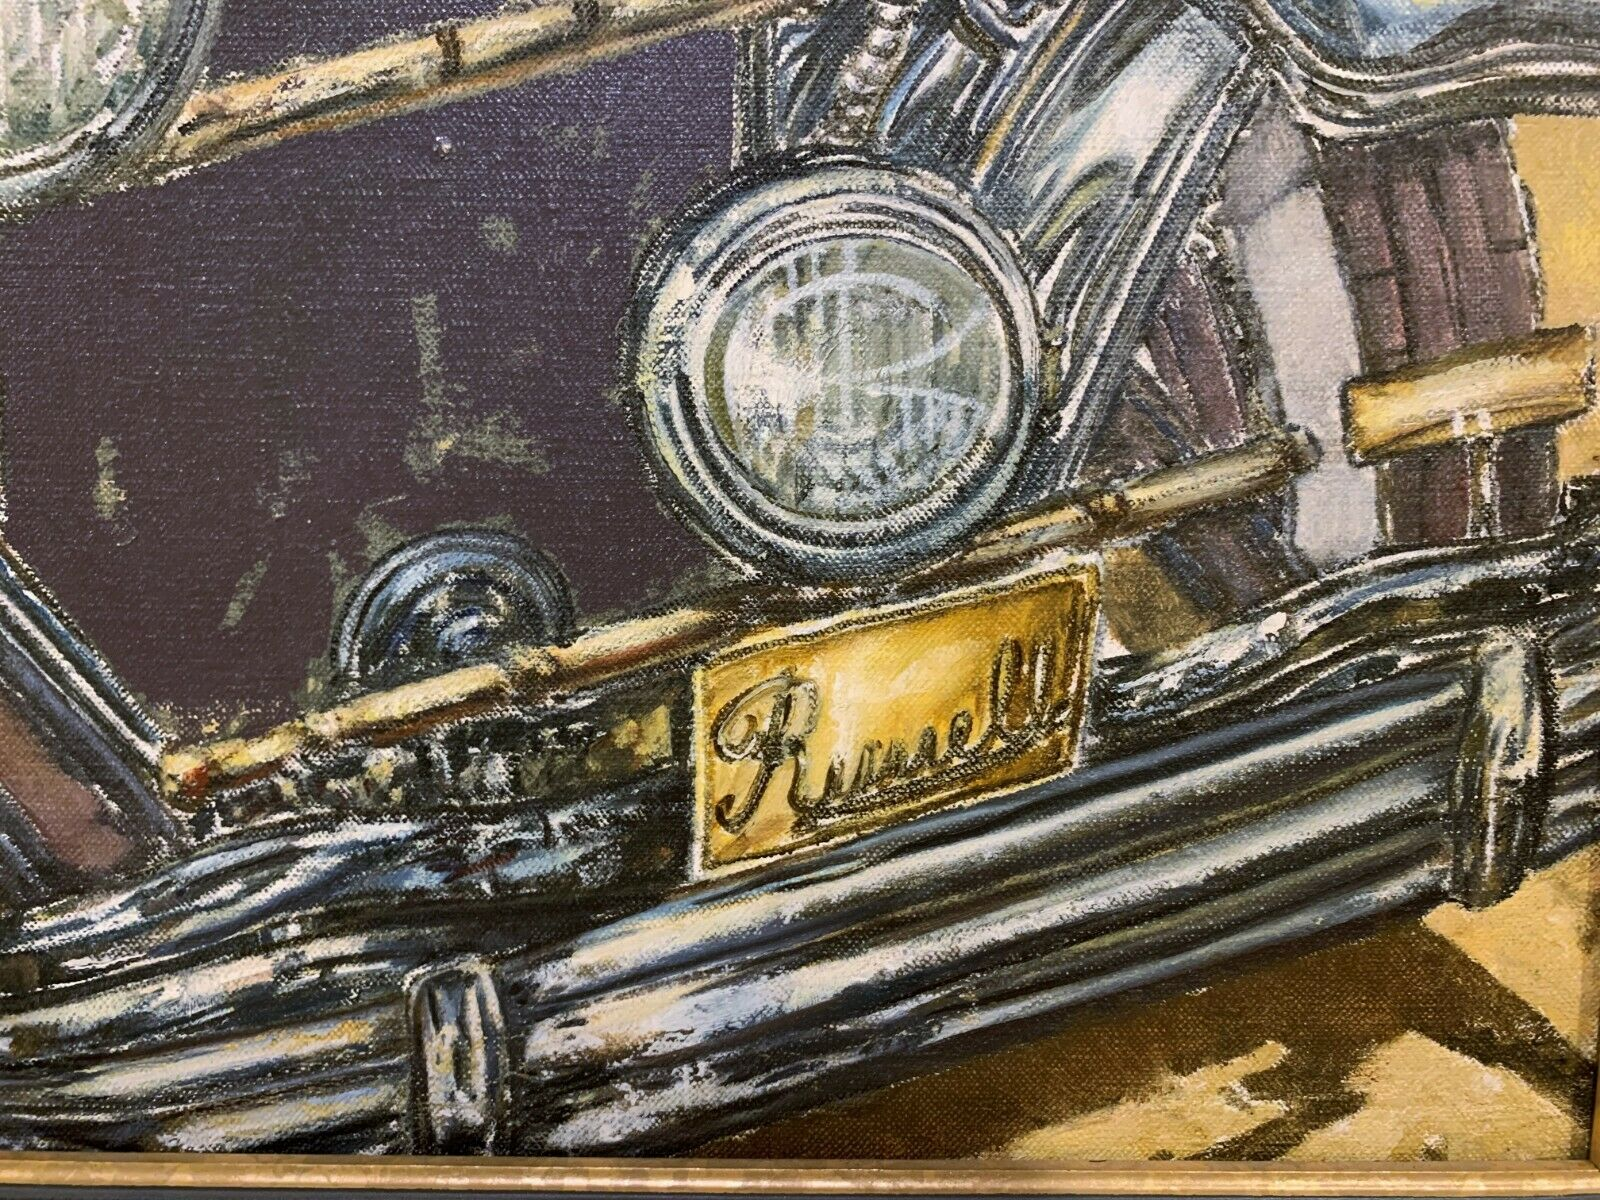 CONTEMPORARY PAINTING Of A CLASSIC CAR AUTOMOBILE 1920s 1930s - $395.00